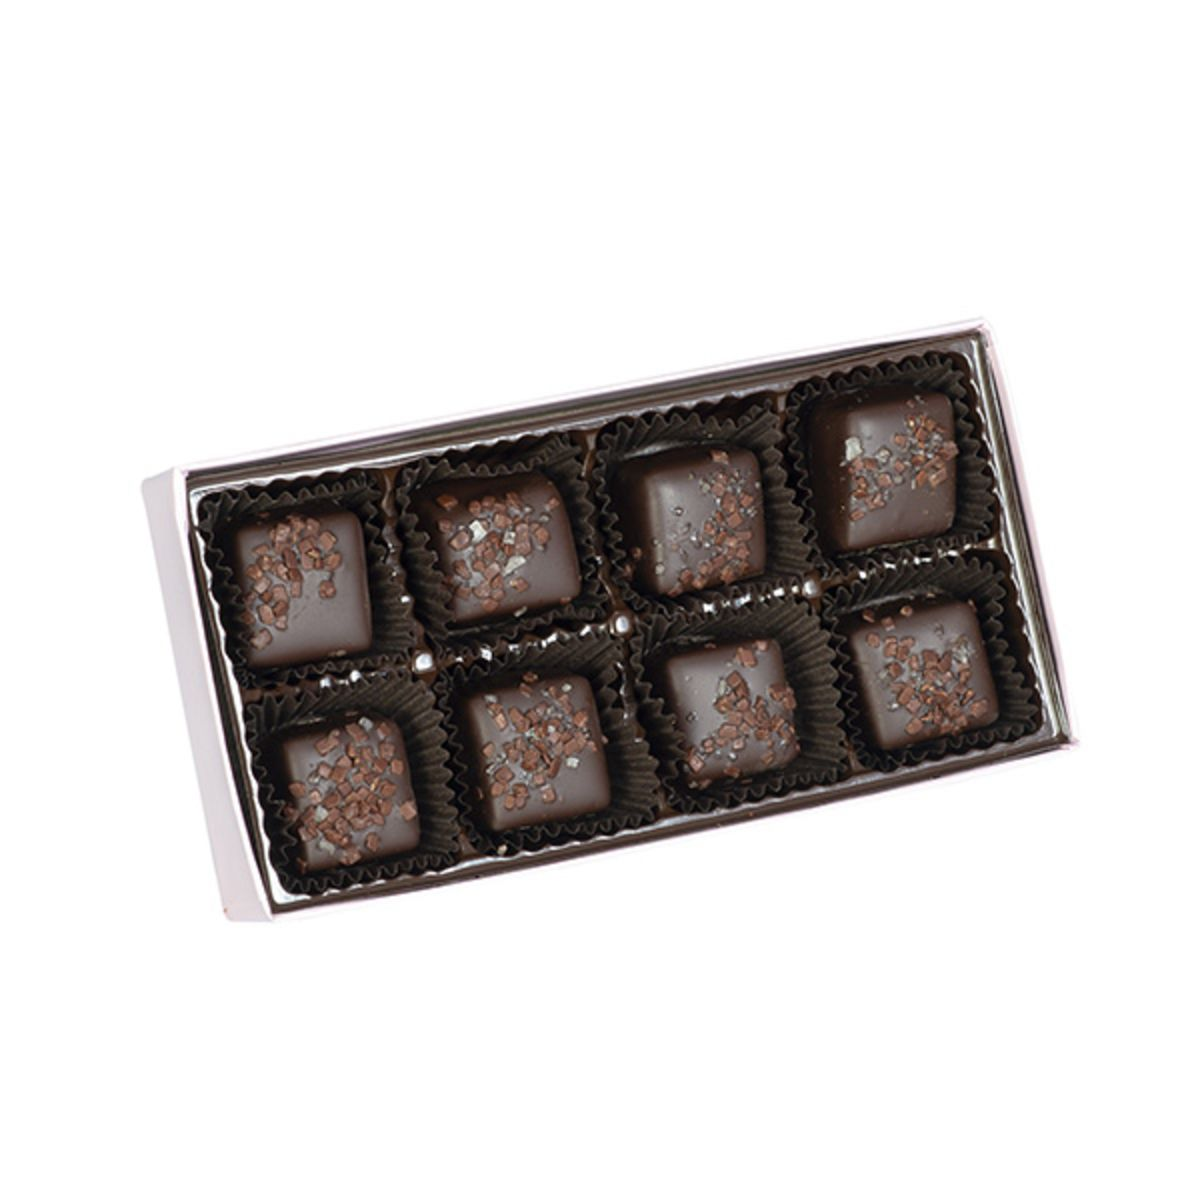 Pease's Dark Chocolate-coated Chocolate Sea Salt Caramels